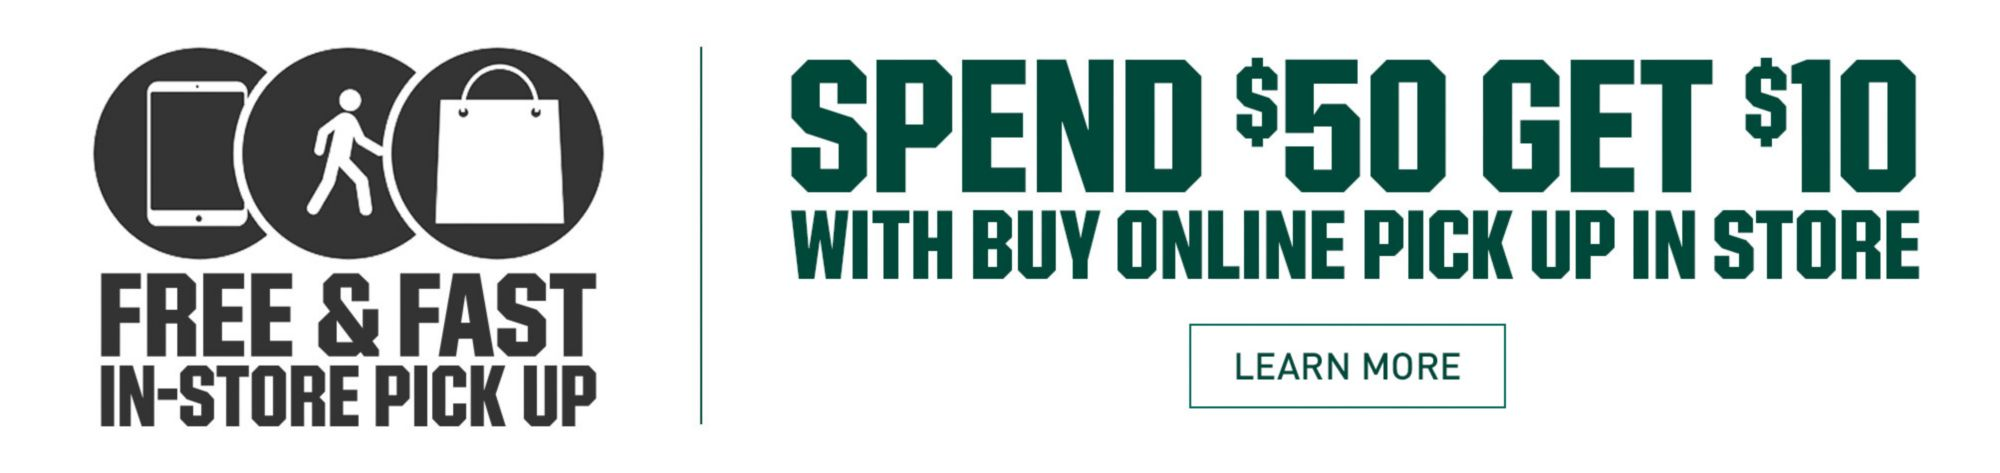 Learn More - Buy Online Pick Up In Store Cash Code